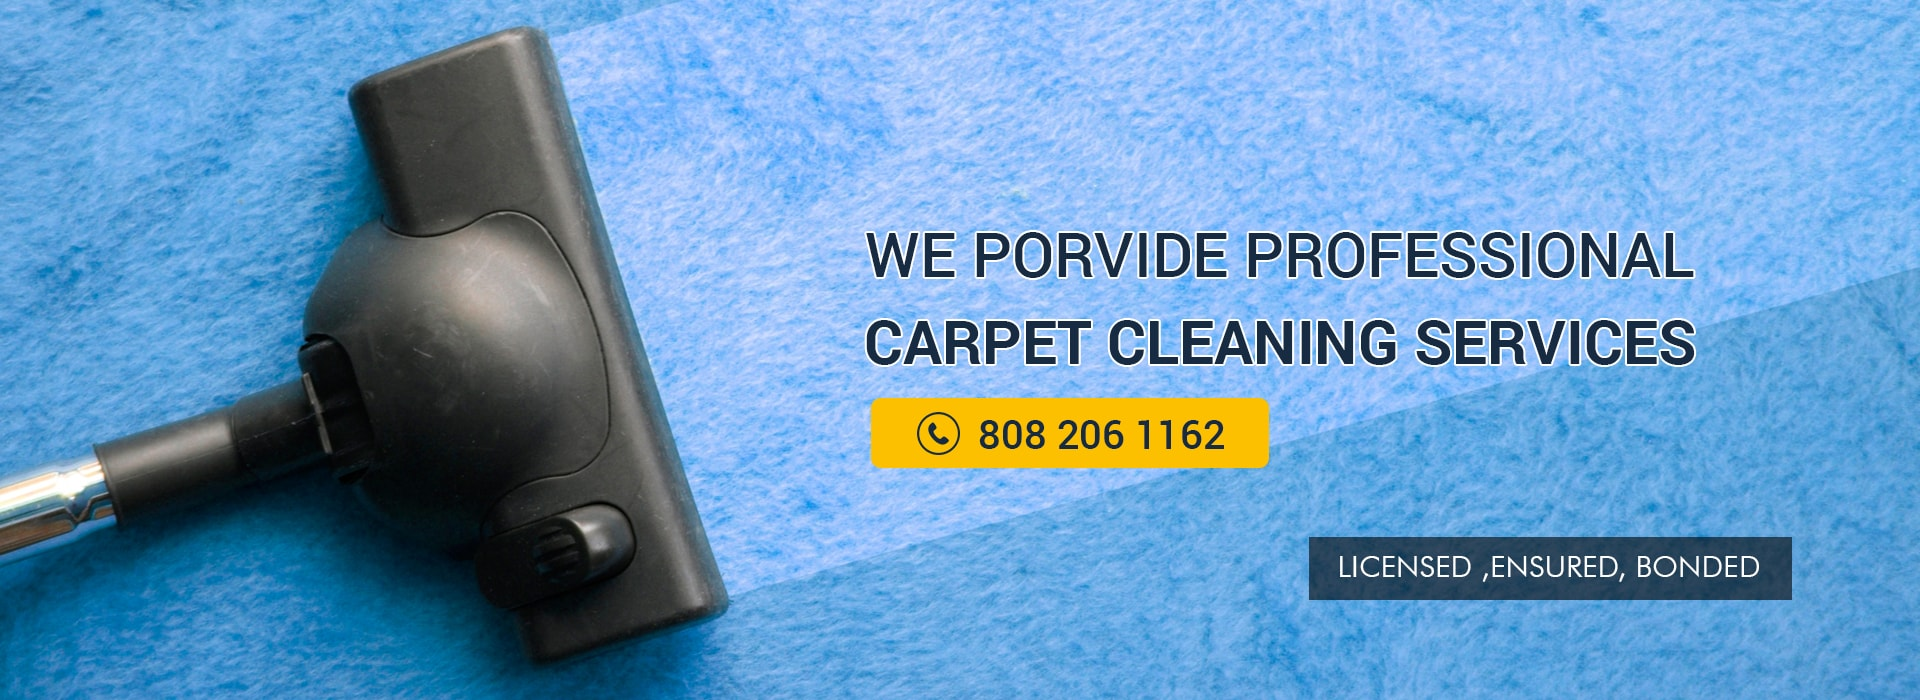 # 1 OAHU CARPET CLEANING COMPANY